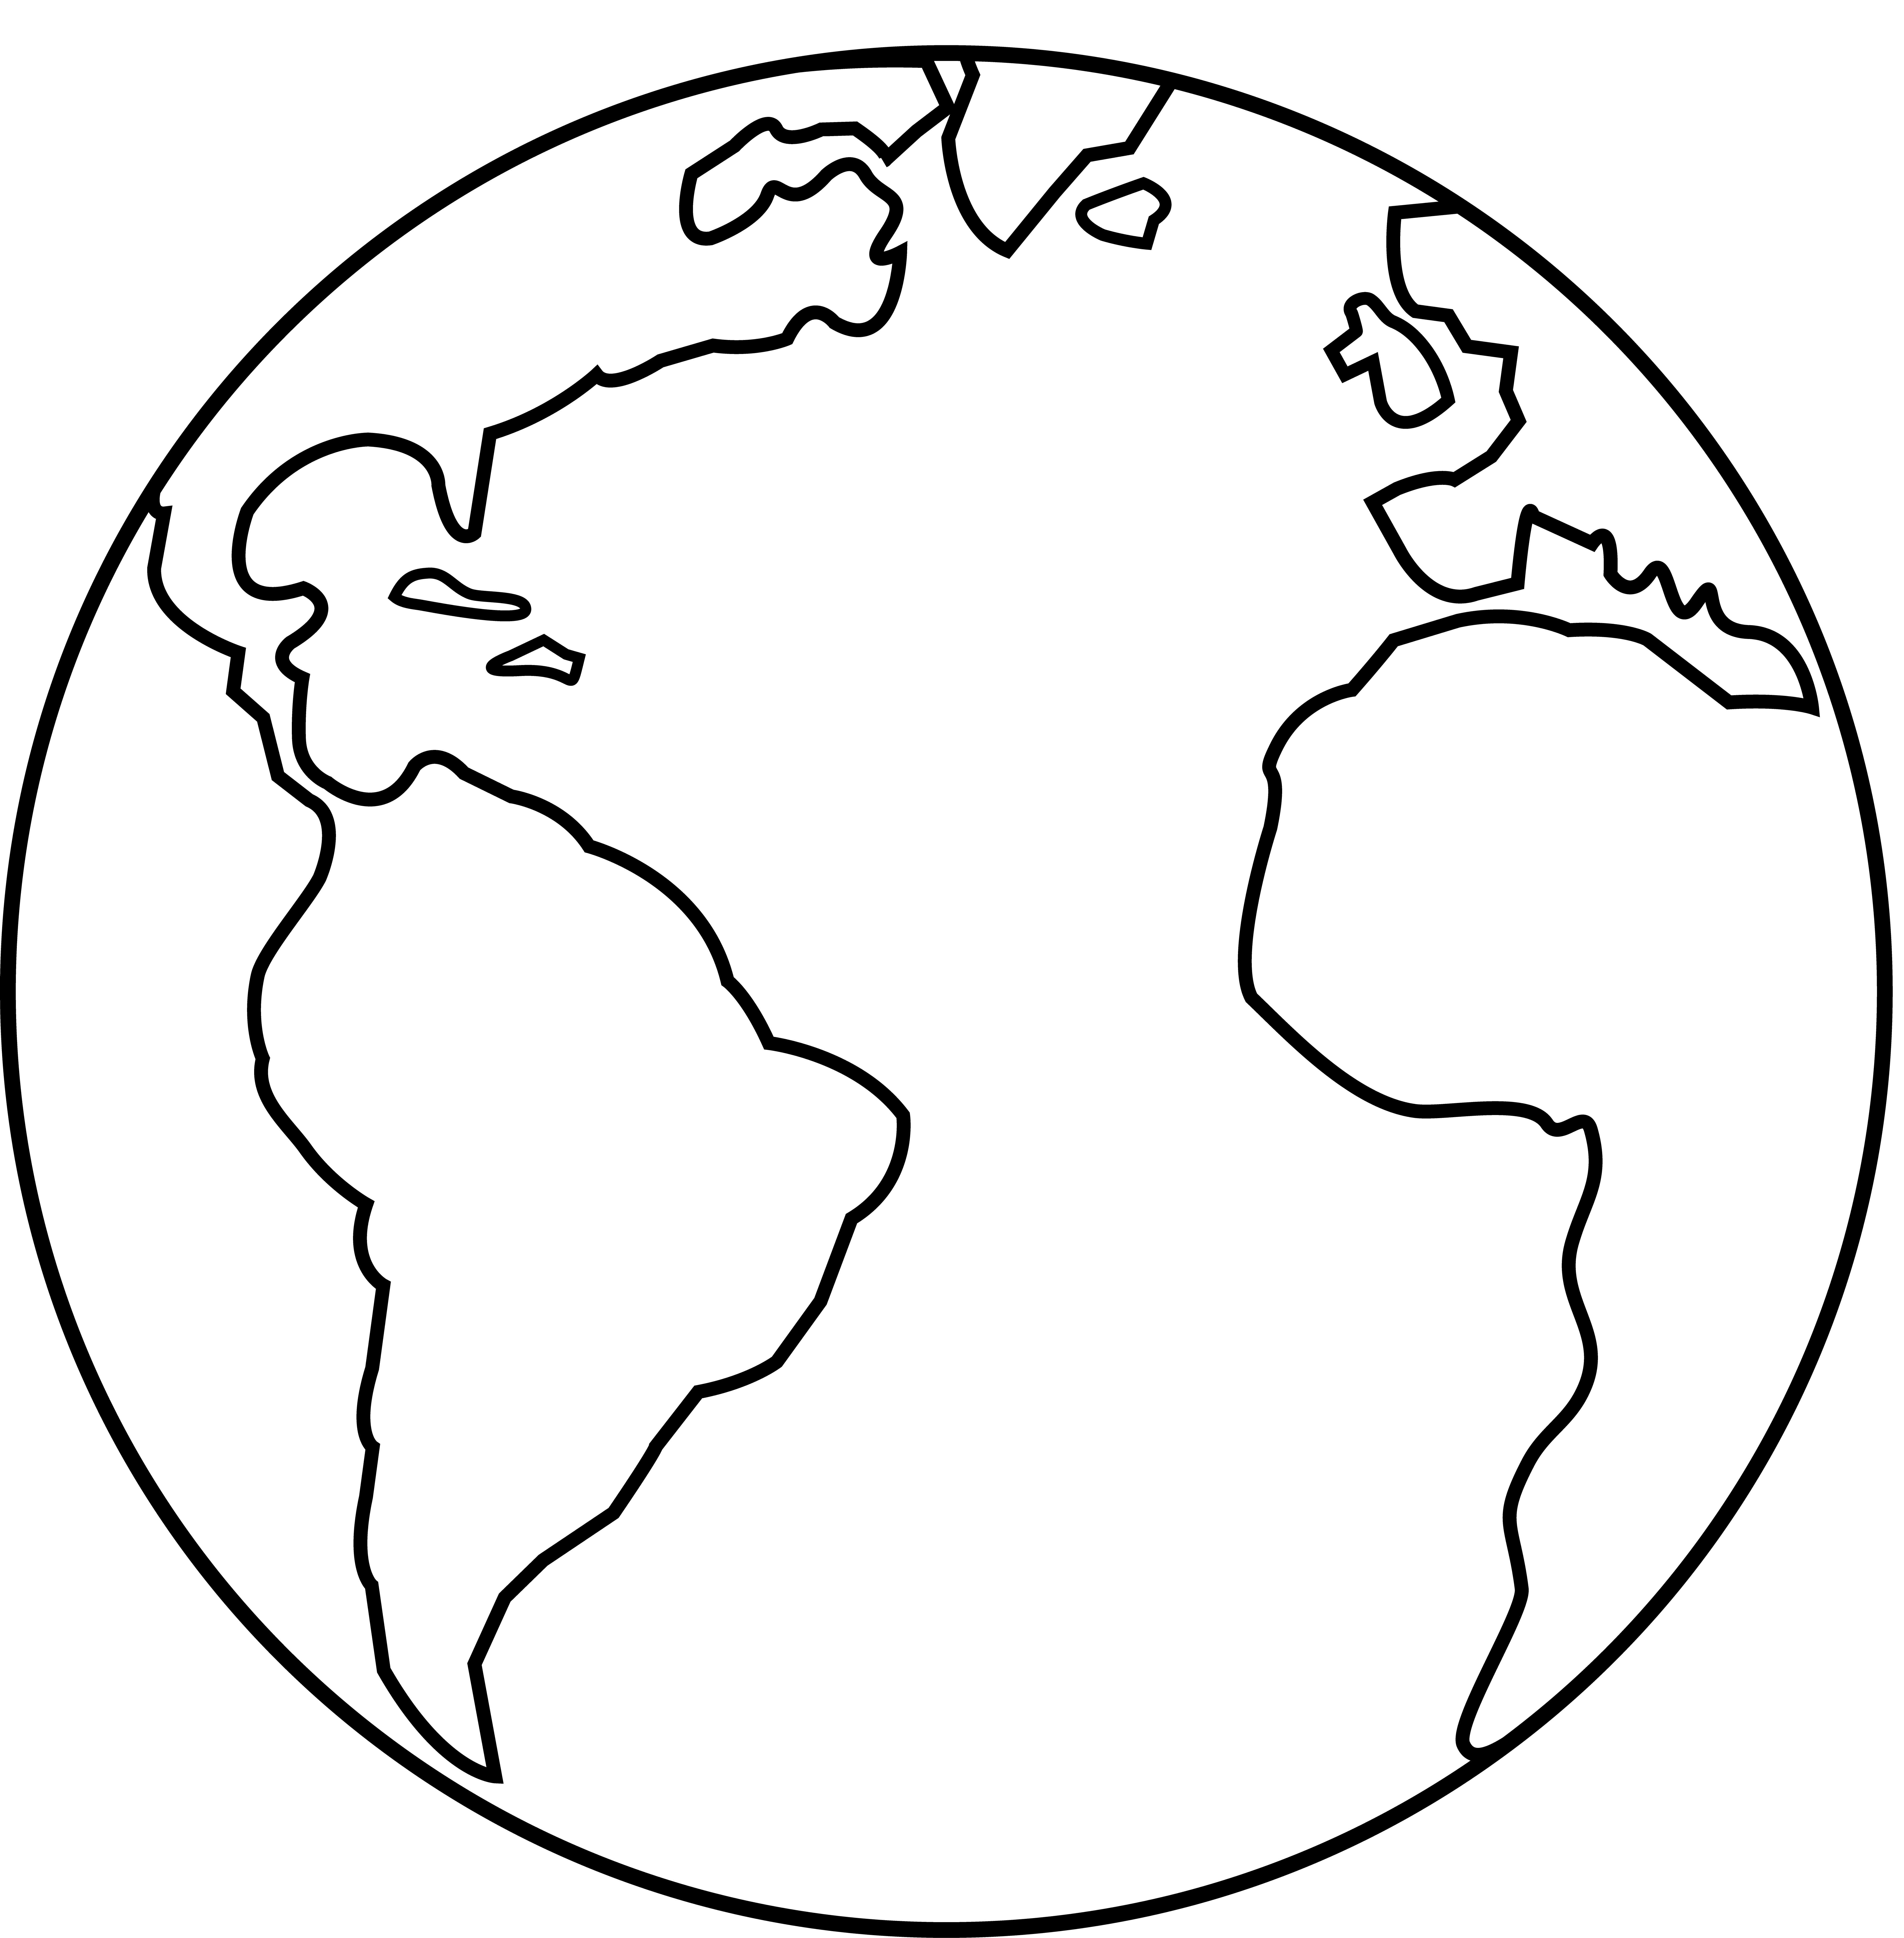 8031x8174 Huge Collection Of 'line Drawing Of The Earth' Download More Than